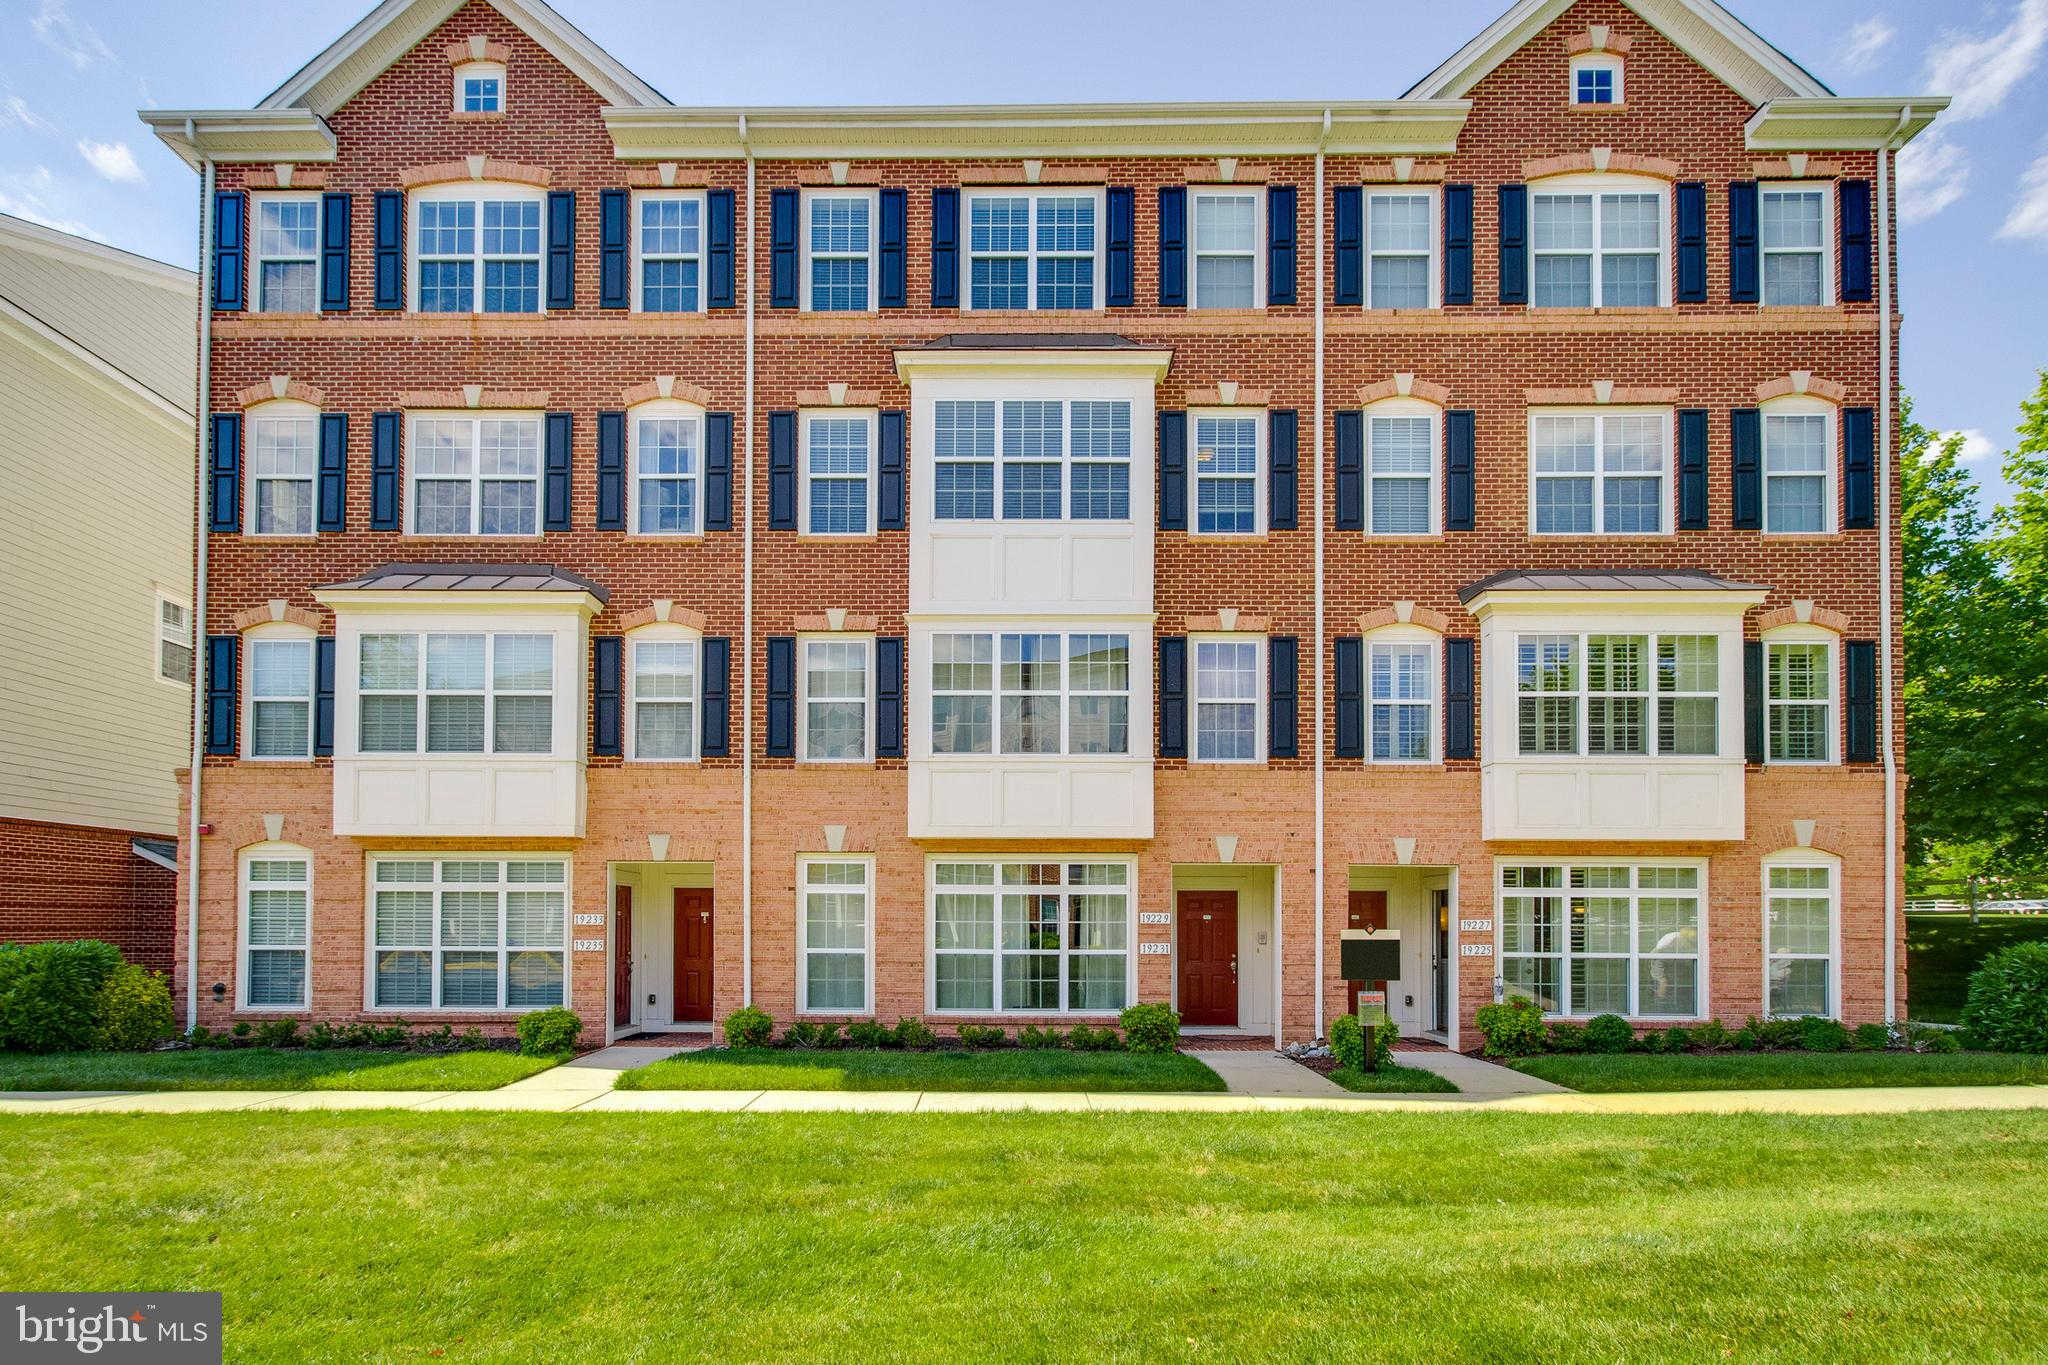 19229 Winmeade Drive, Leesburg, VA 20176 now has a new price of $379,000!